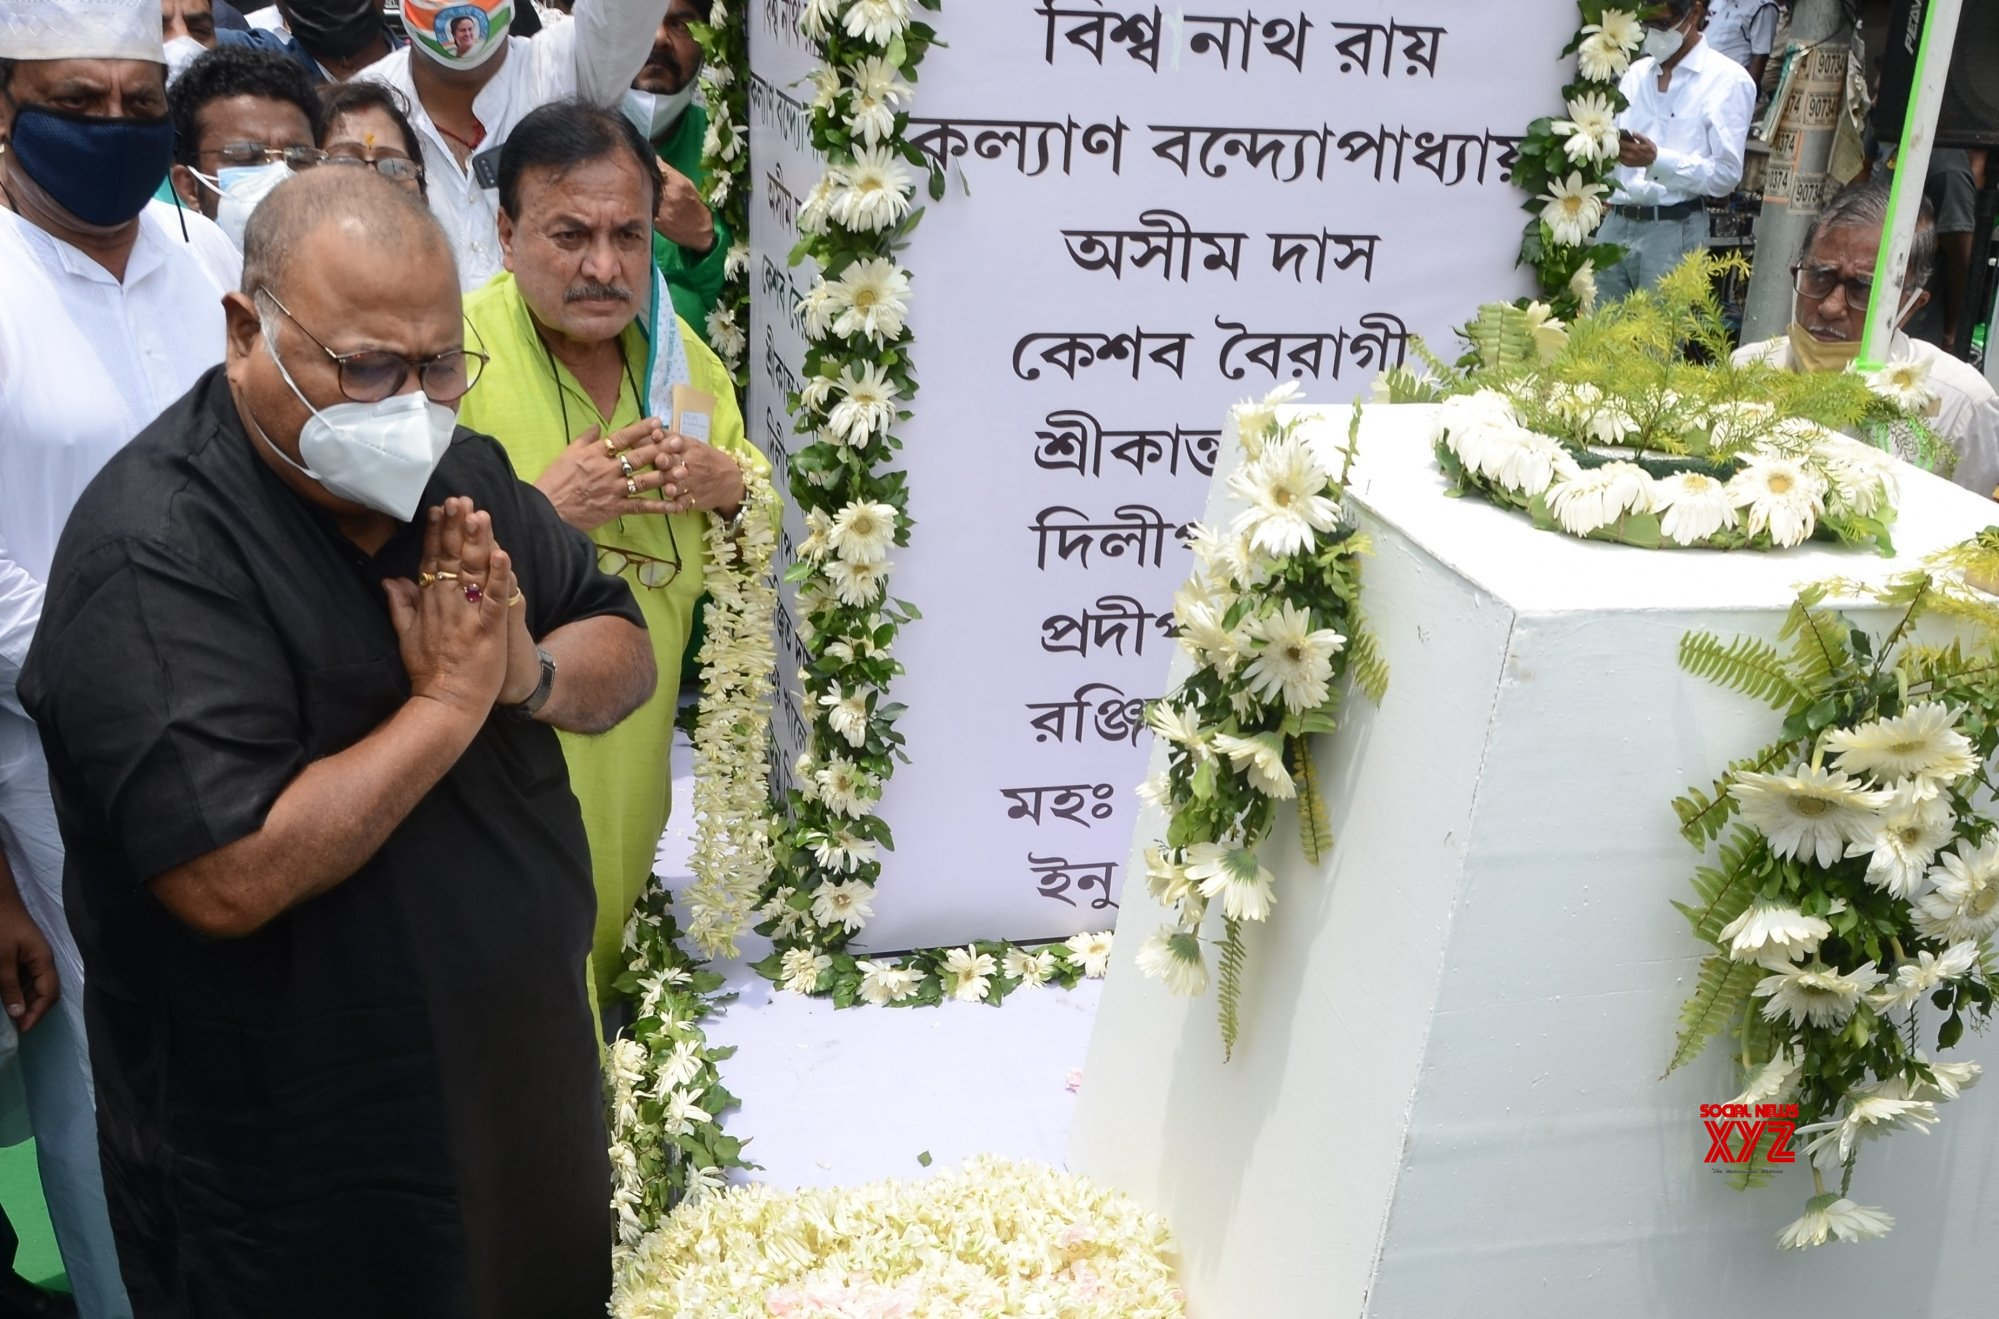 Kolkata: TMC leaders and West Bengal Ministers paying tributes on the occasion of Martyrs day on Wednesday, July 21, 2021, observed in memory of those killed on July 21 in 1993 #Gallery